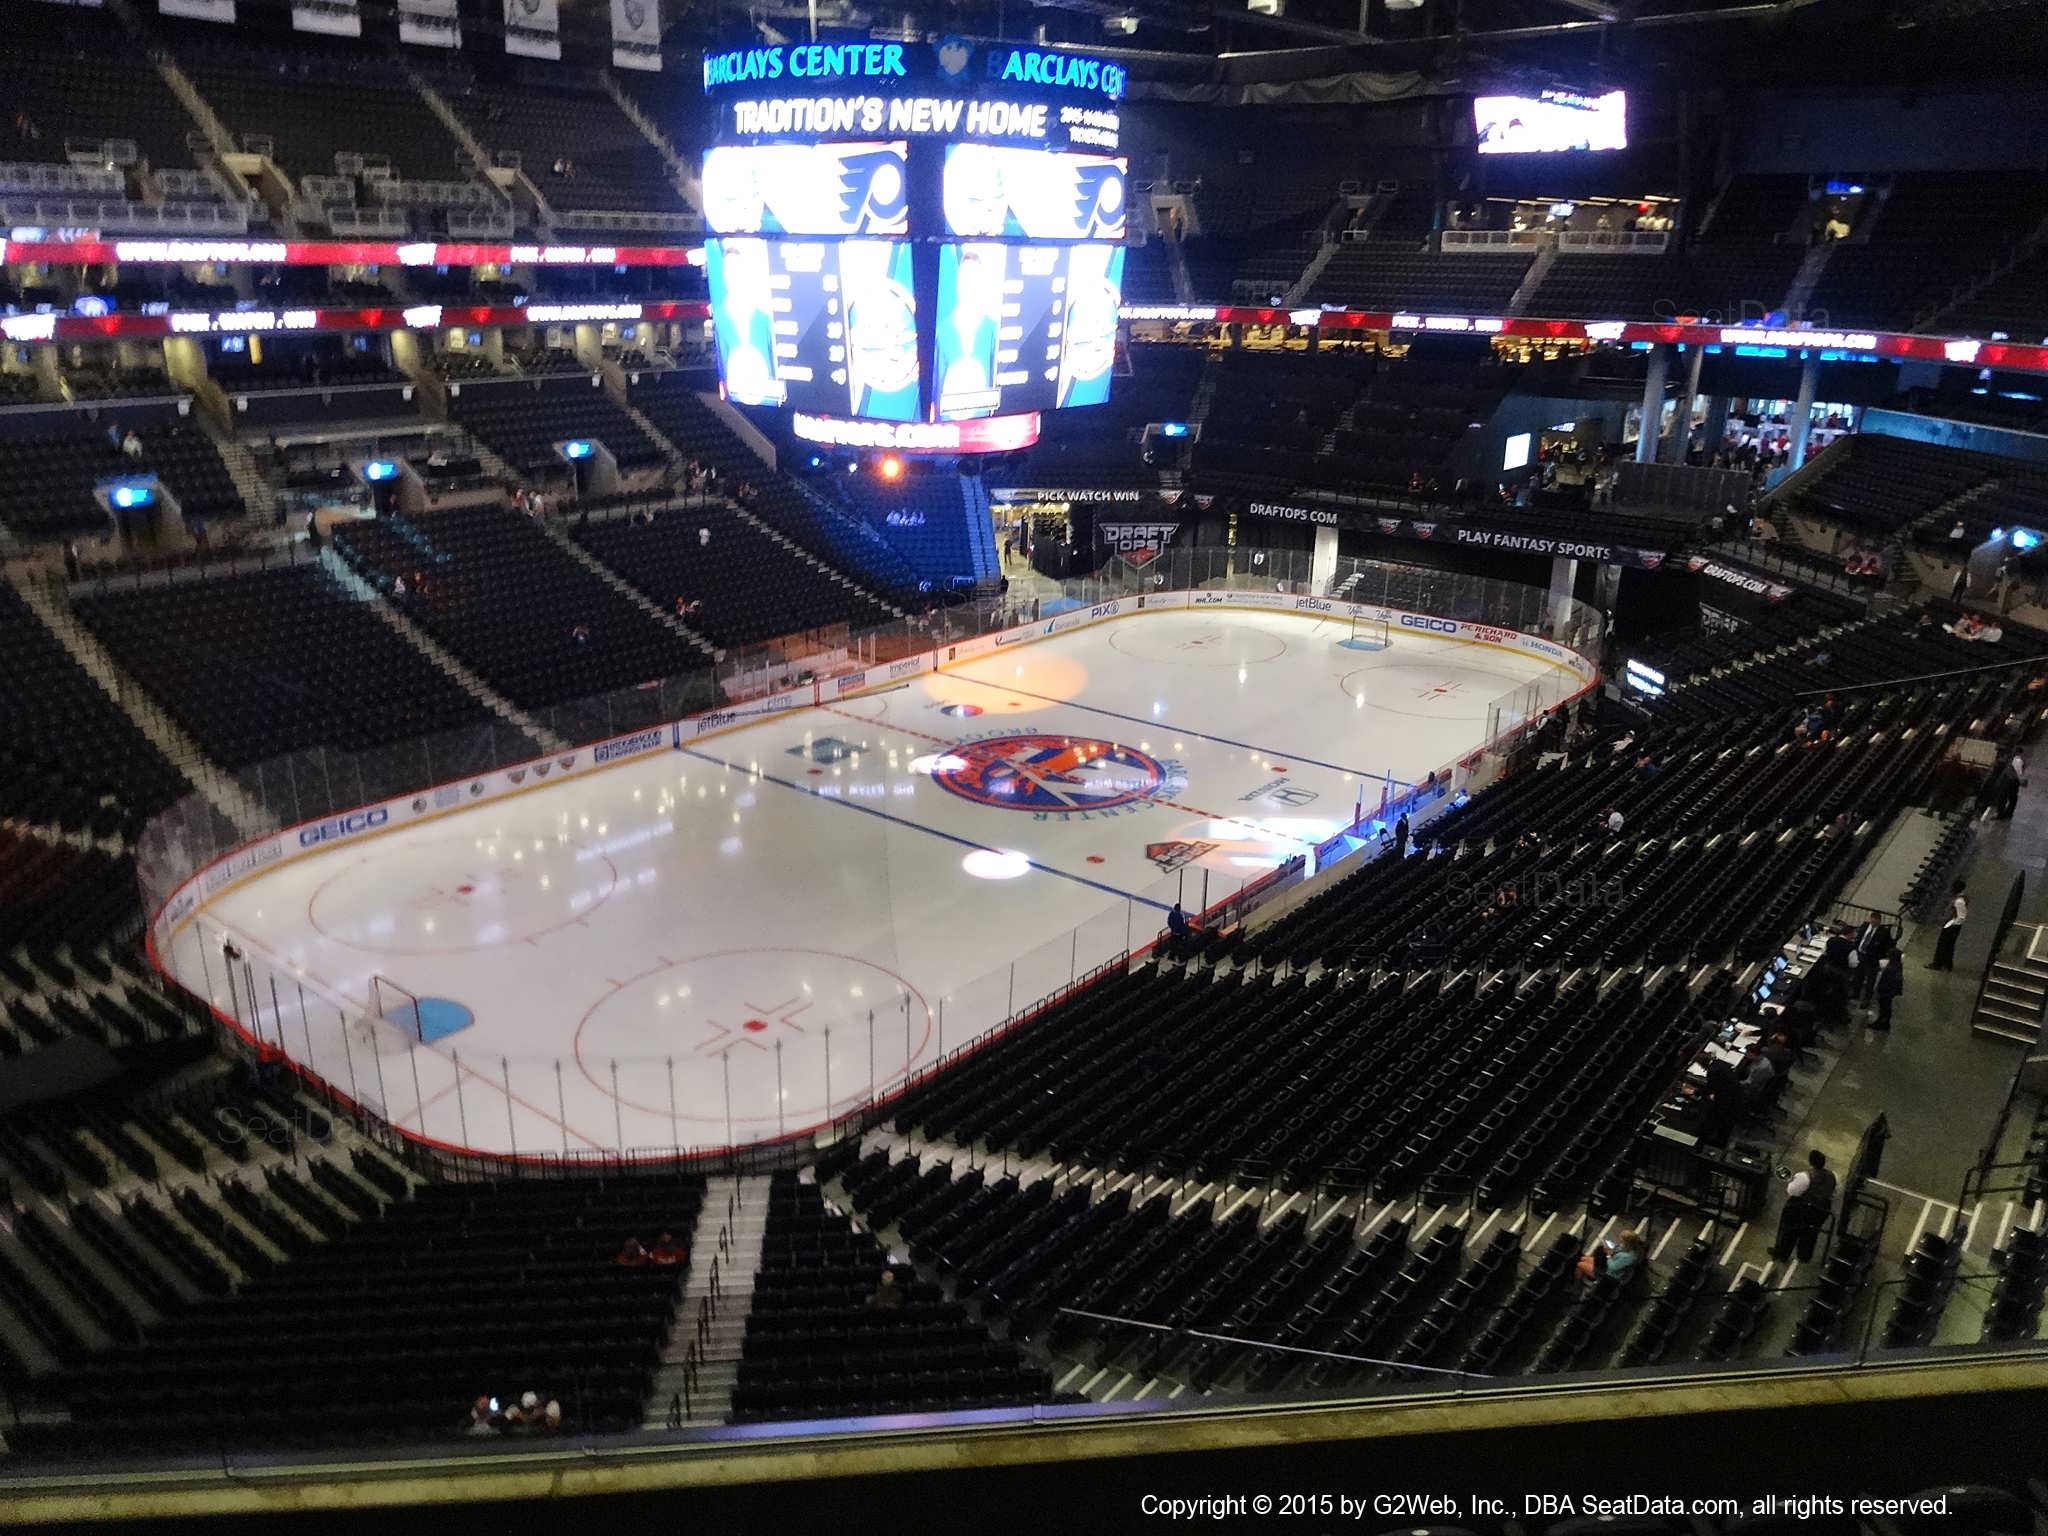 Seat View from Section 212 at the Barclays Center, home of the New York Islanders